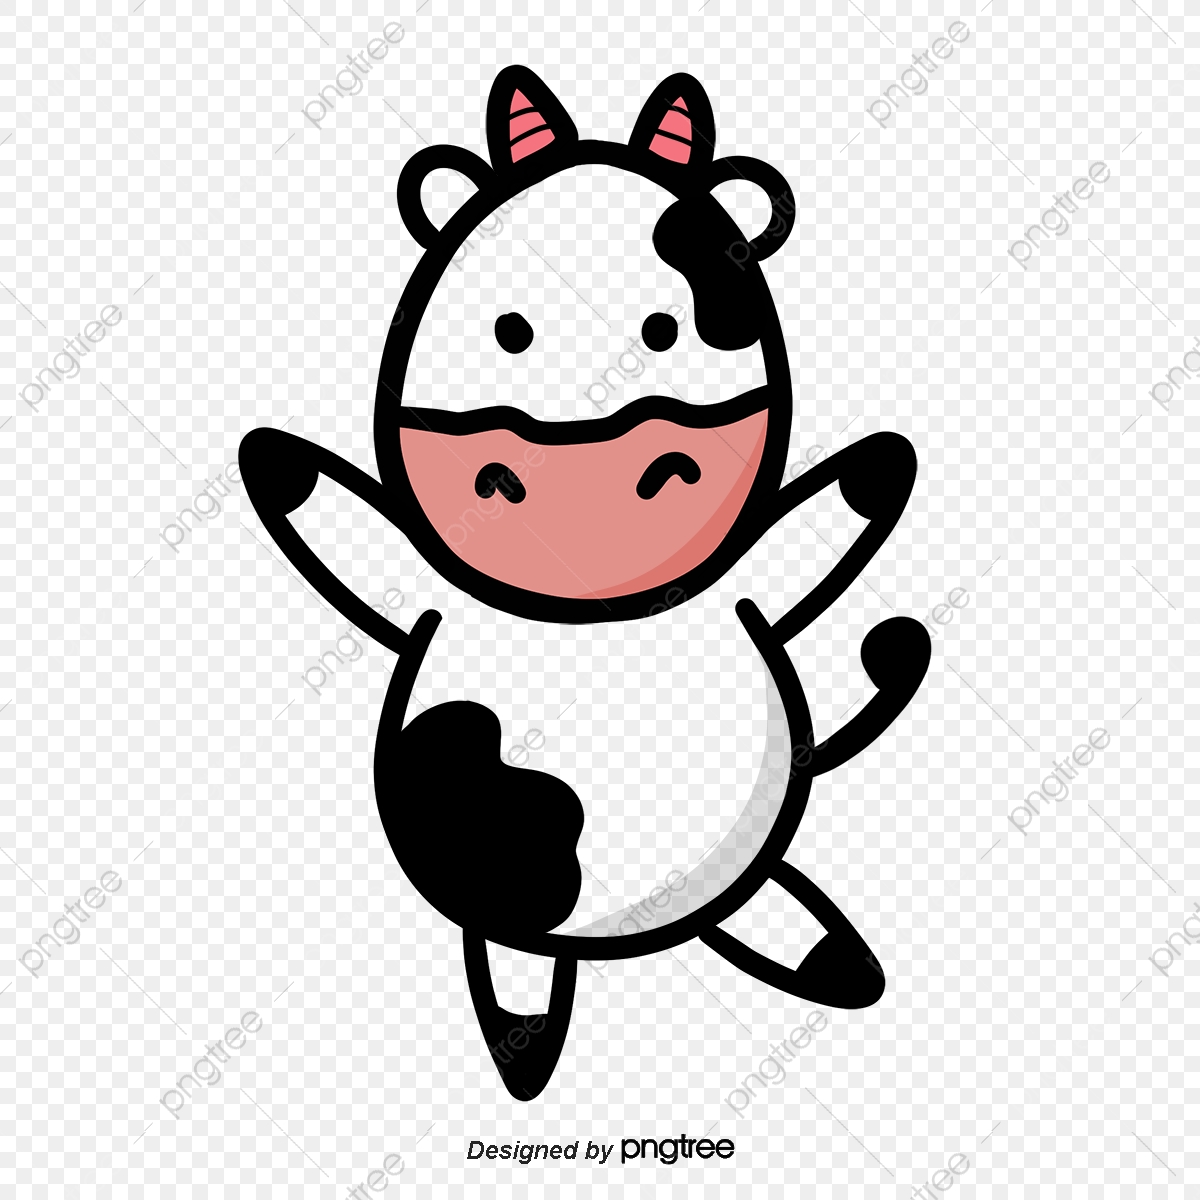 Cows clipart simple. Black white and pink